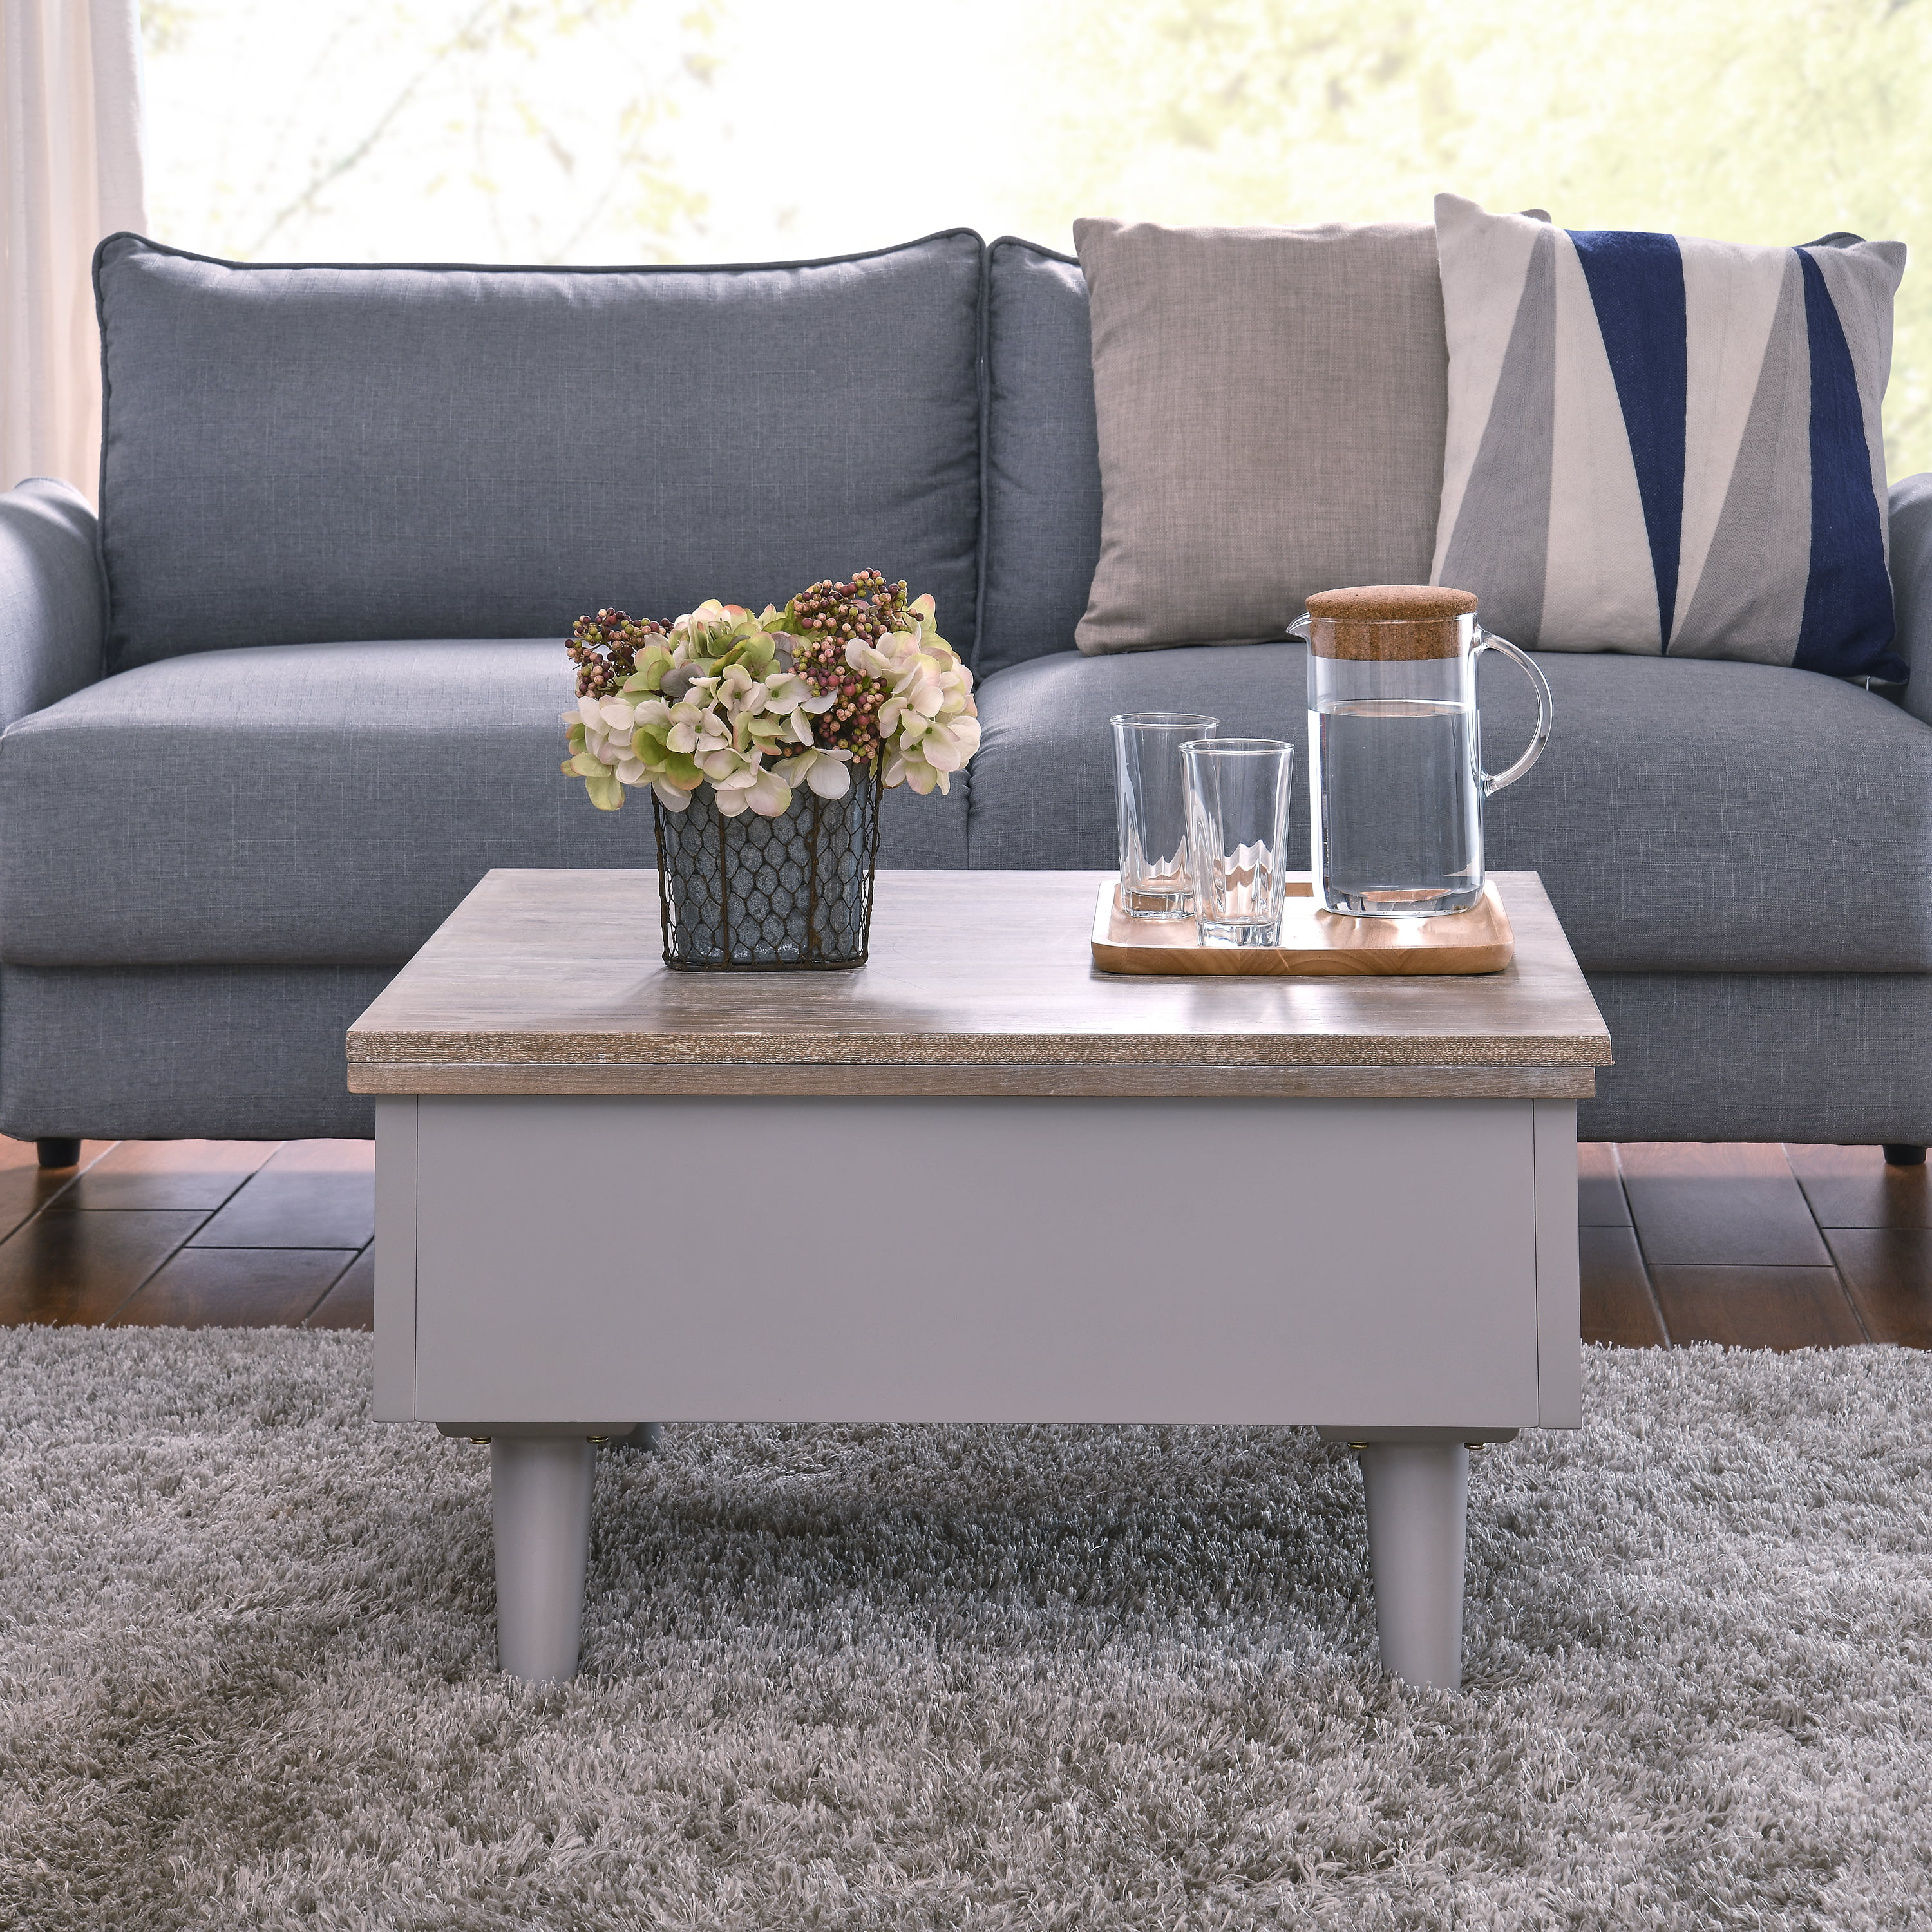 okasl convertible storage coffee table to dining table